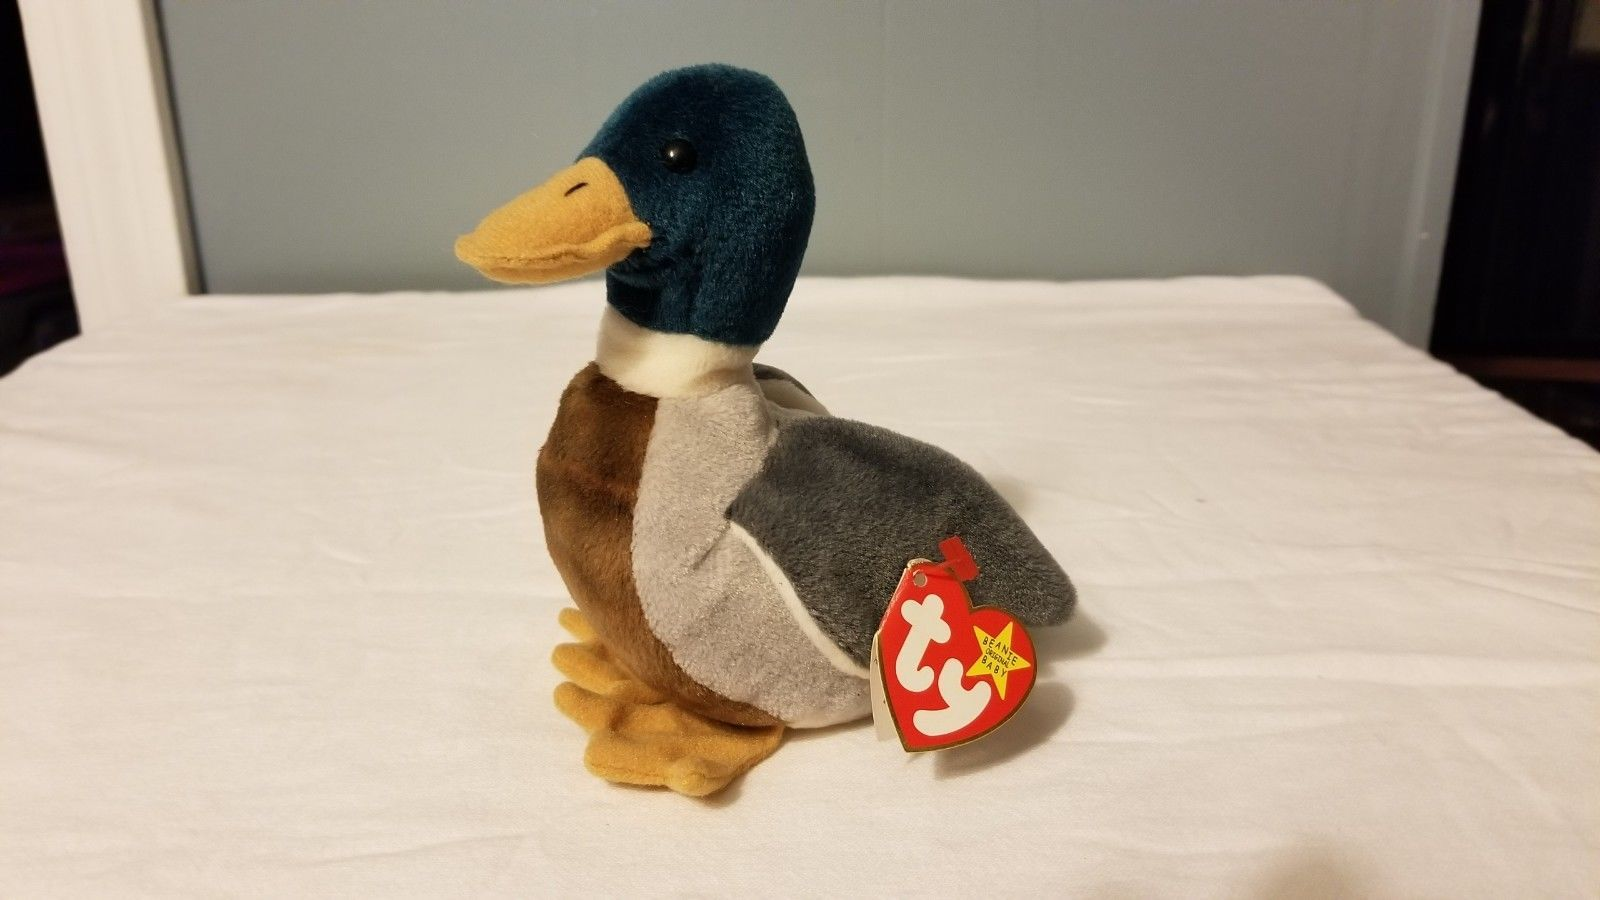 The 20 Expensive Collectible Beanie Babies Will Make You Rich - Most  Valuable Beanie Babies 4cf3d2b3c6